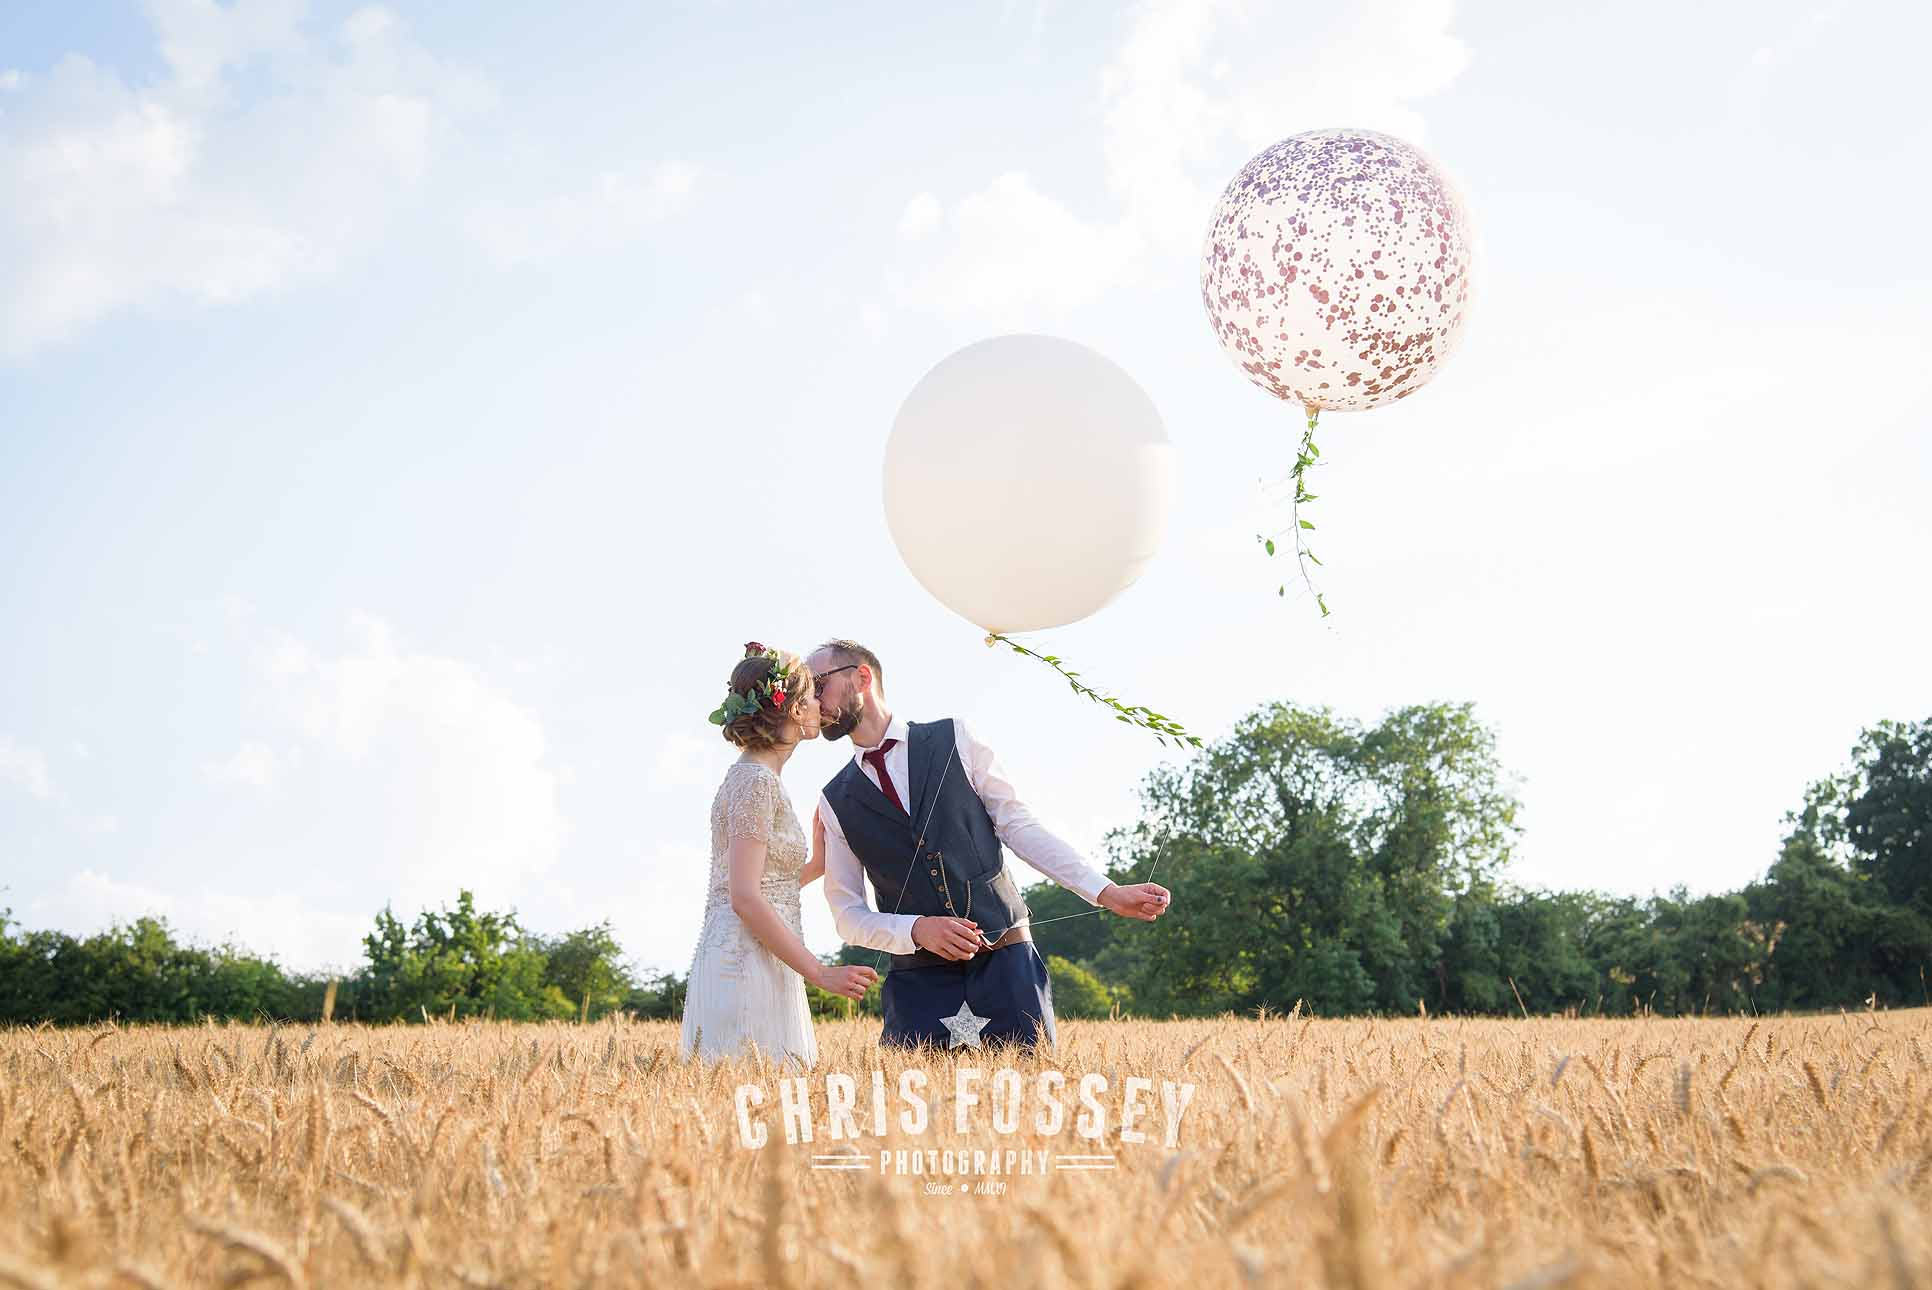 The-Barn-Upcote-Farm-Withington-Wedding-Photography-Gloucestershire-Lauren-Tom